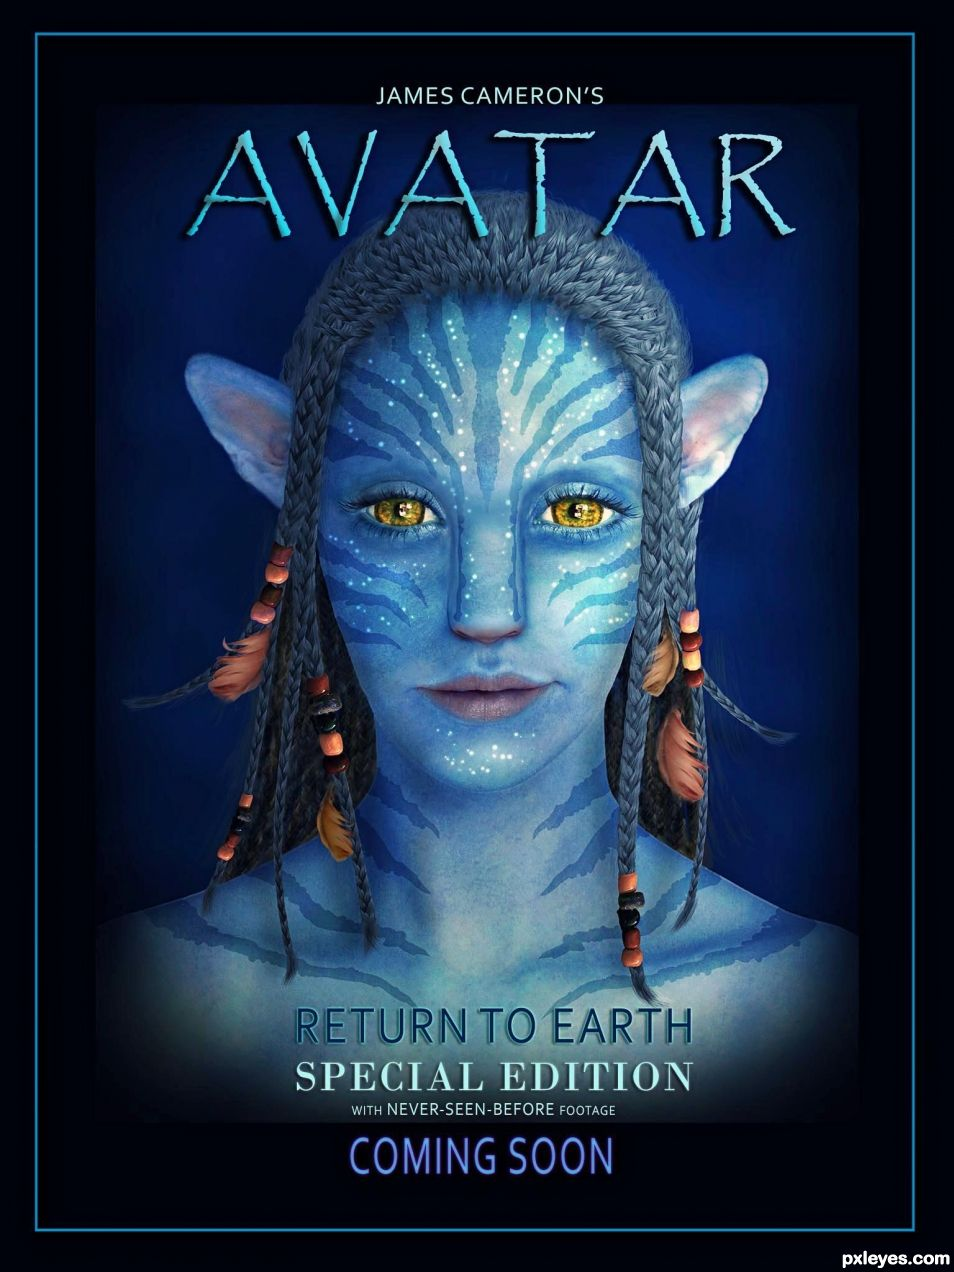 Creation of Avatar: Final Result